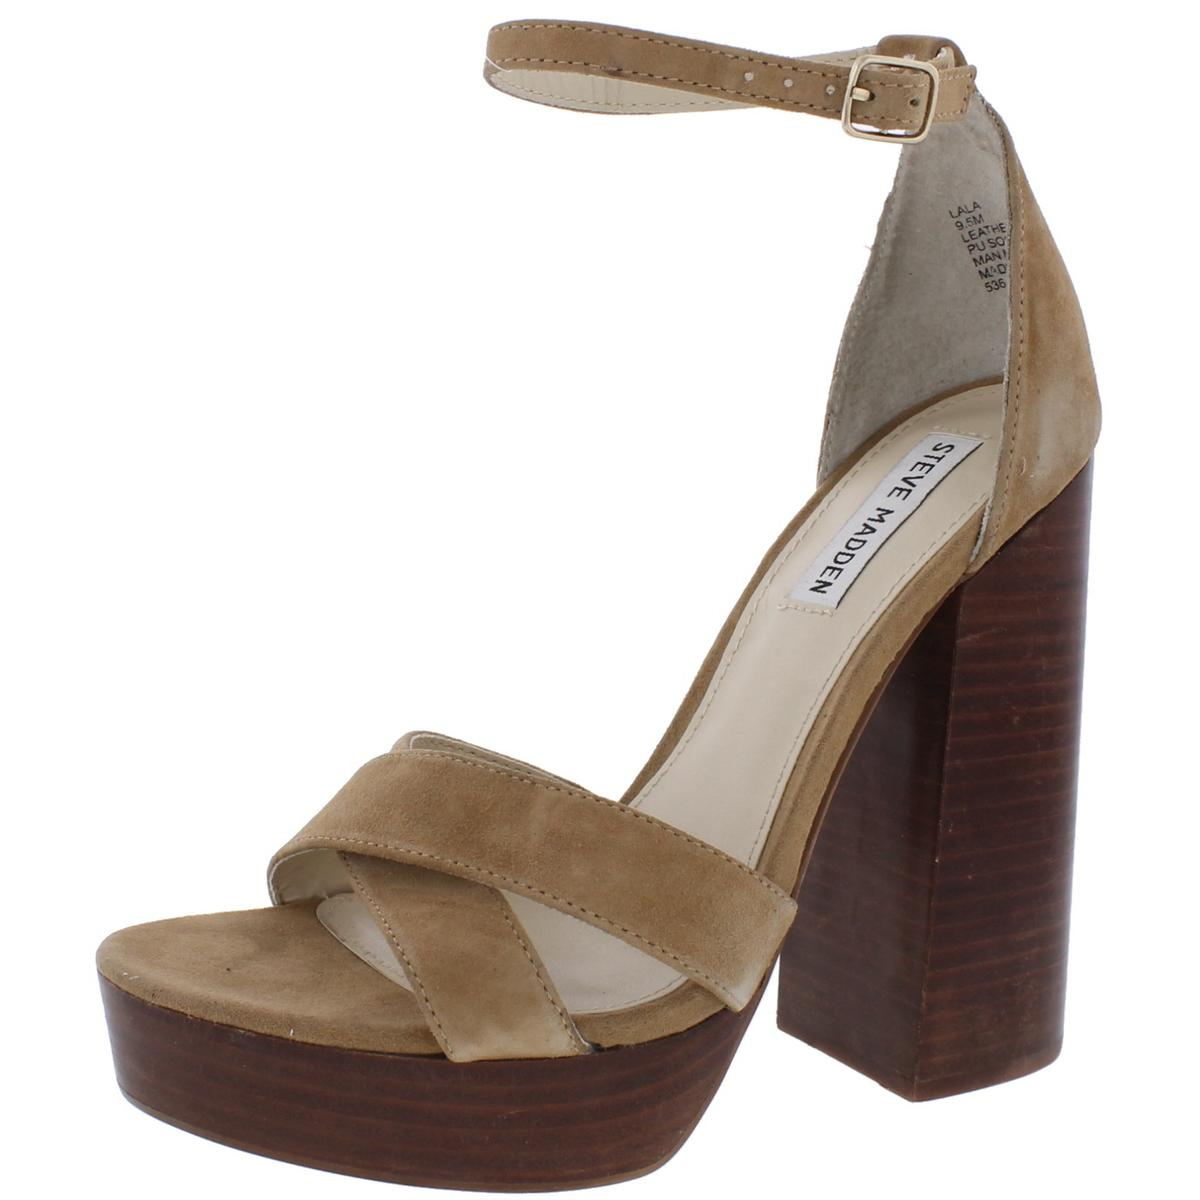 610461268b3 Image is loading Steve-Madden-Womens-Lala-Tan-Block-Heels-Shoes-